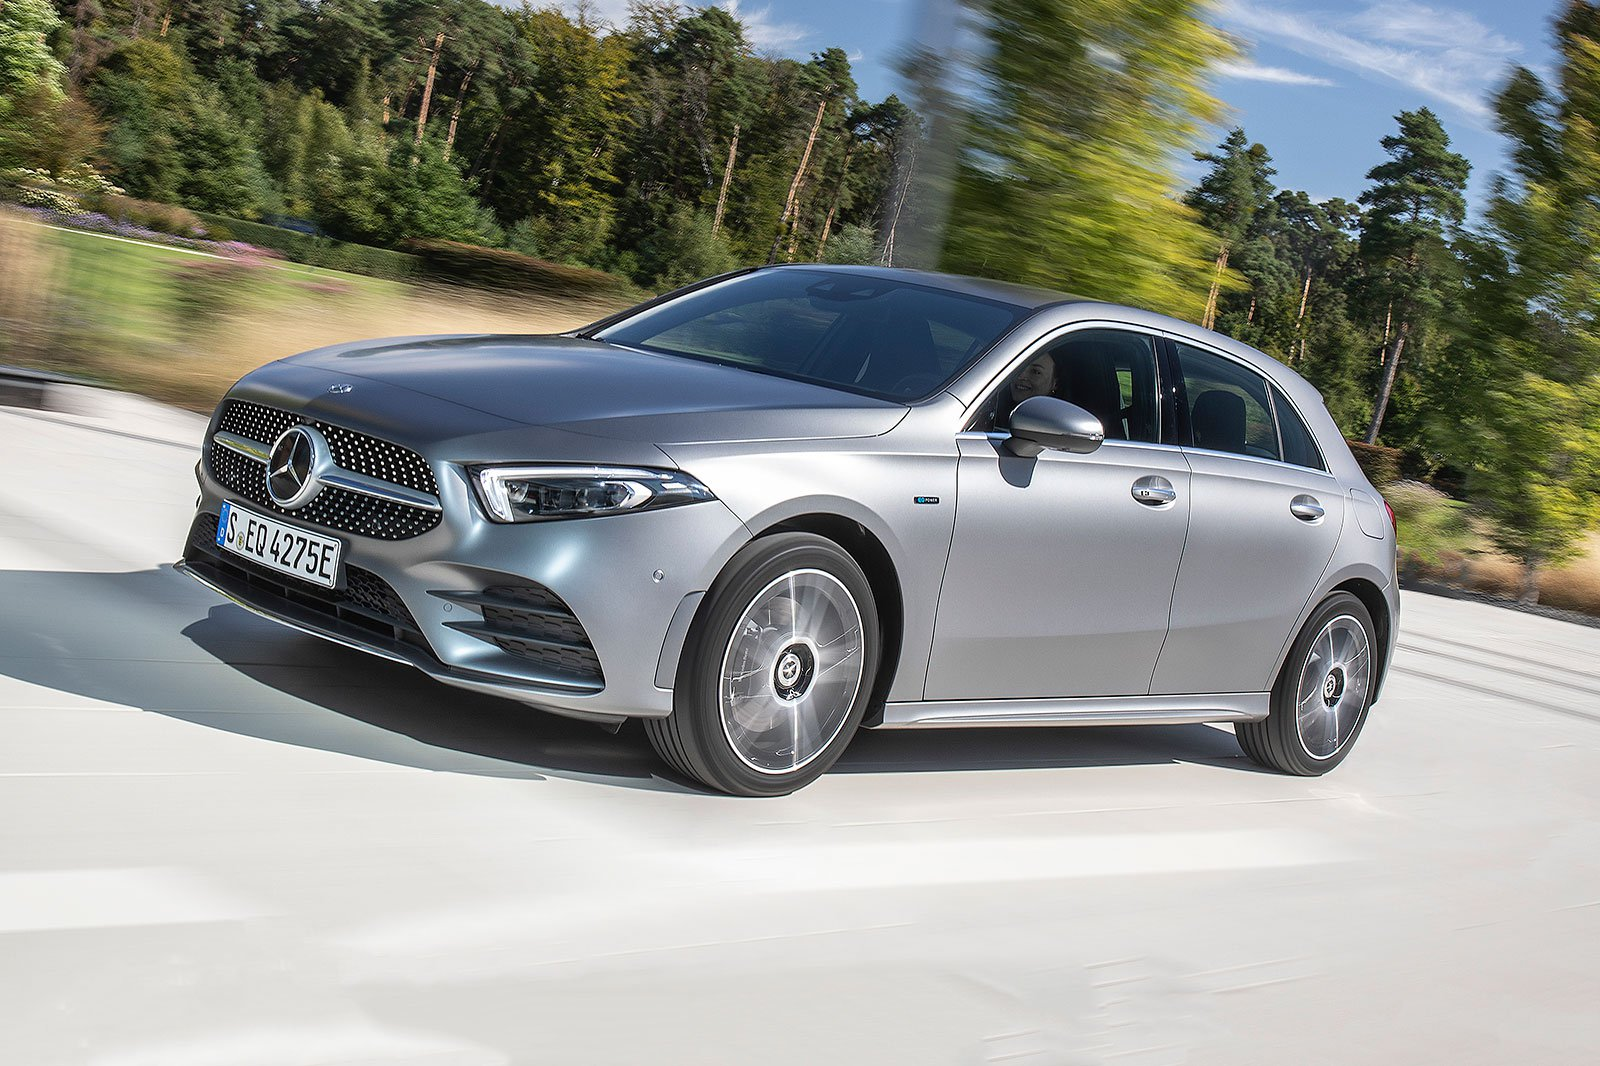 2019 mercedes a 250 e silver driving front